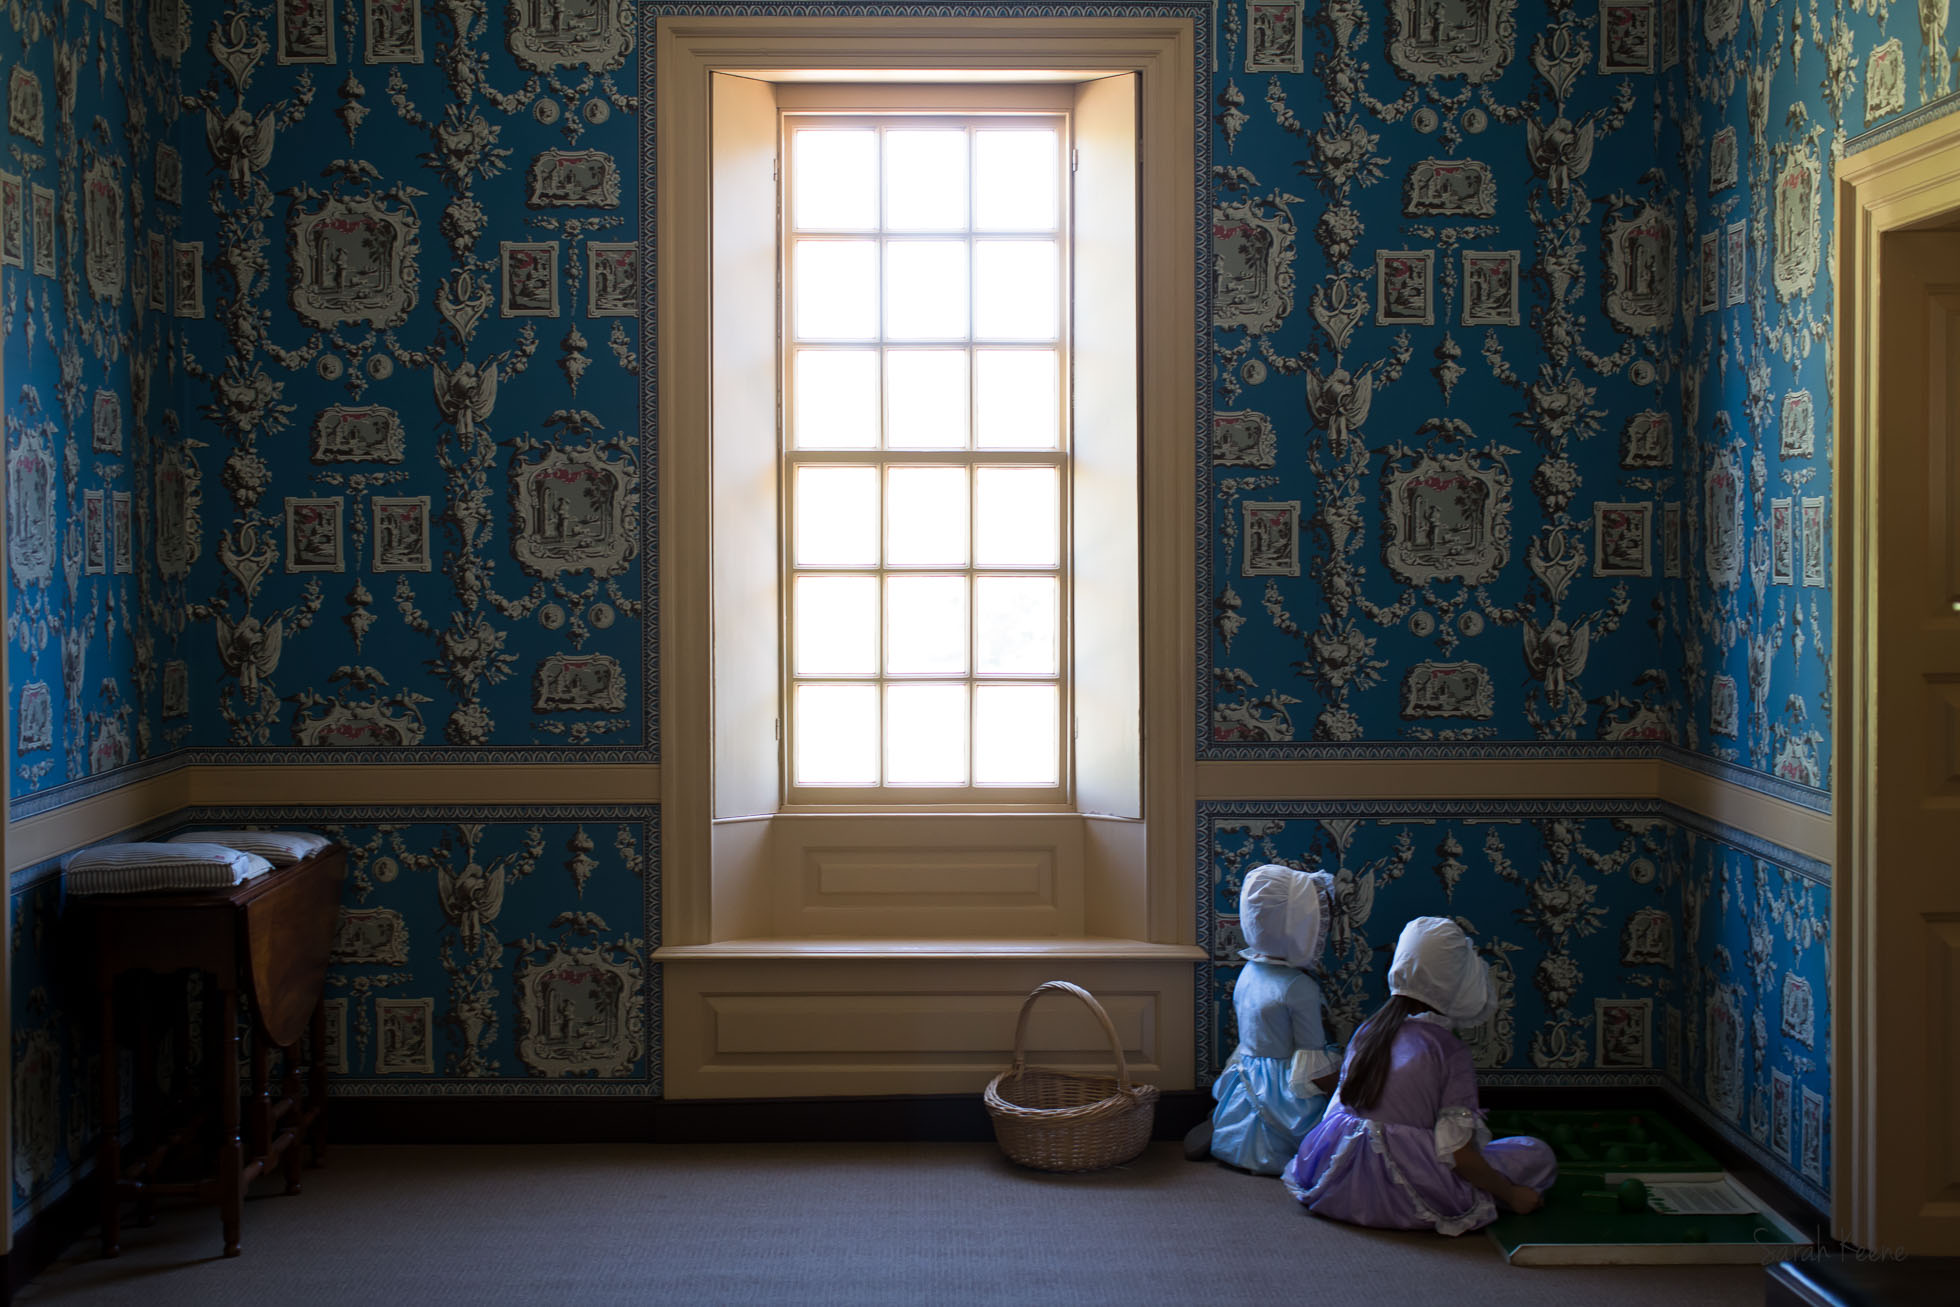 Young girls in colonial dress playing in a historic home